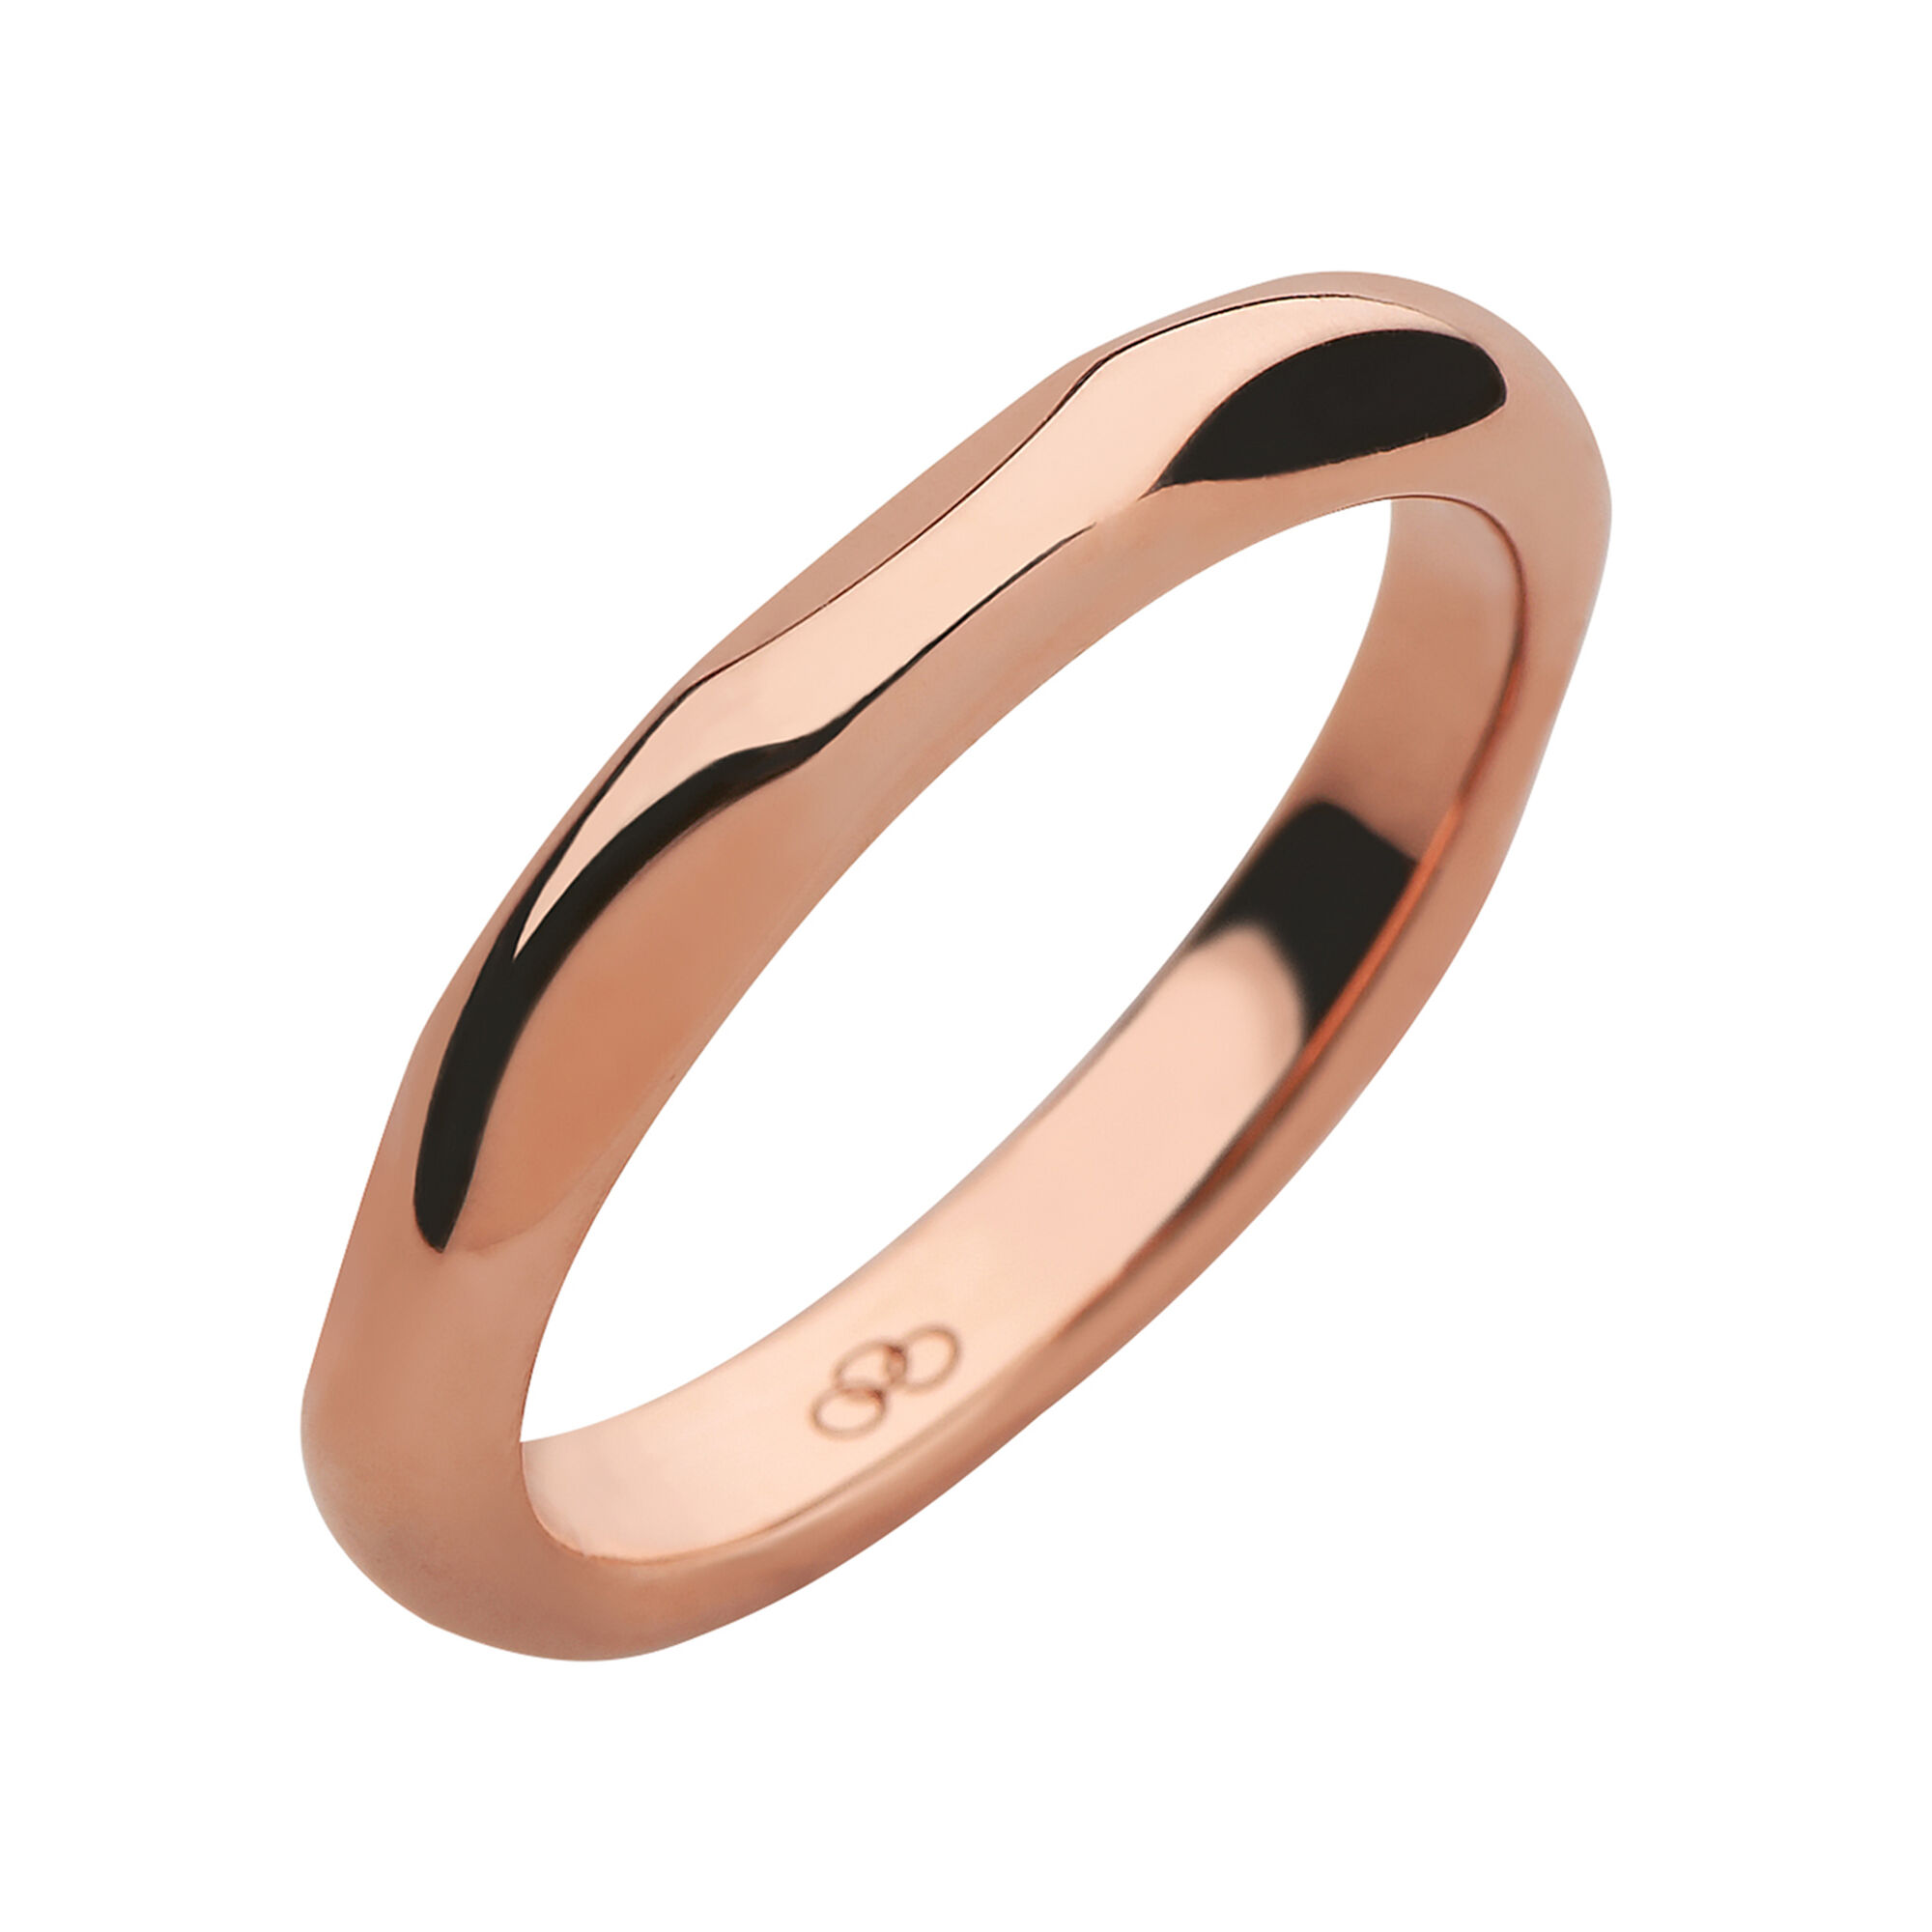 love gold unique sandblast swiss ring matte fit cut satin thursday rings now on wedding band comfort folding for him bands design men ships order days business in finish